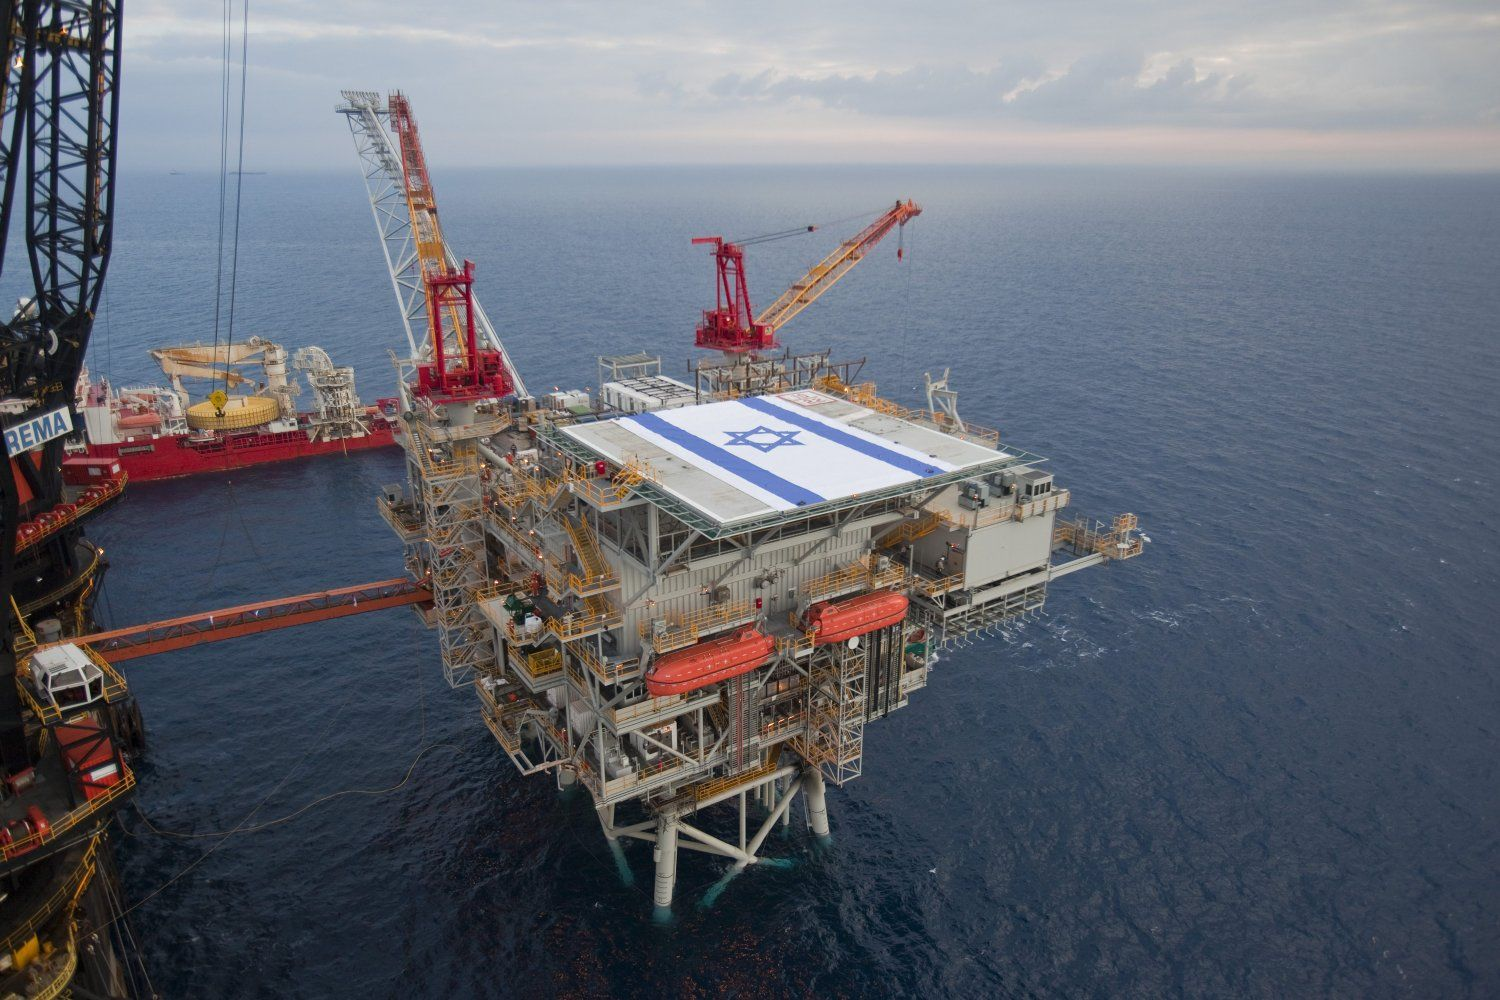 Who's buying Israeli gas? A company owned by the General Intelligence Service